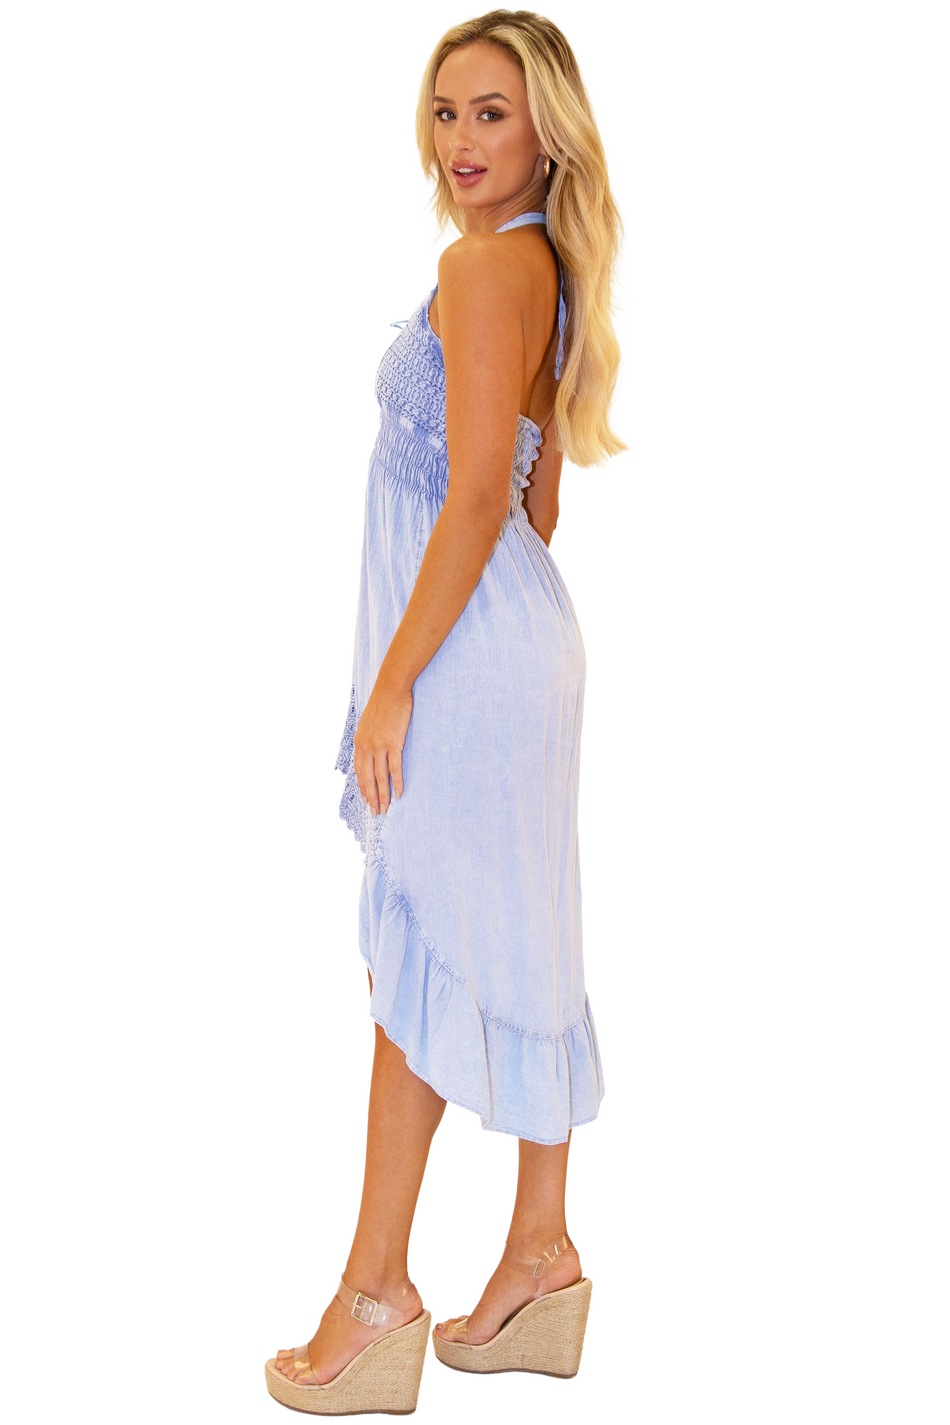 NW1050 - Blue Cotton Dress